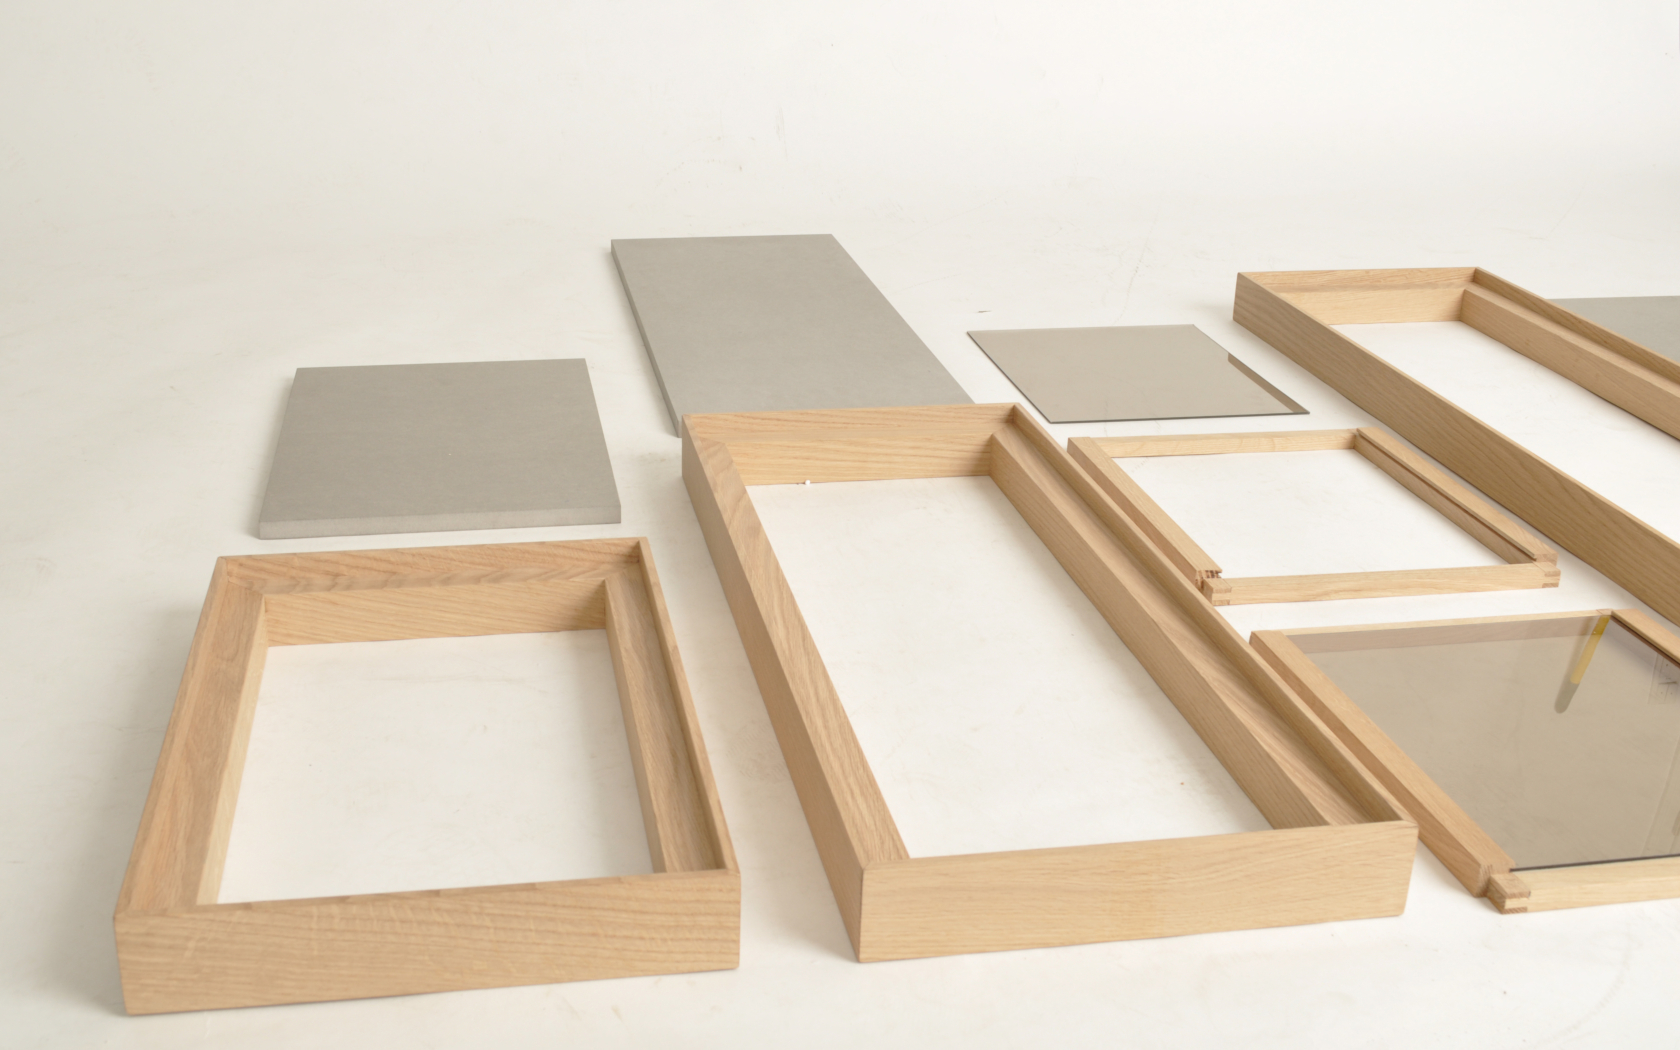 modular shelf for public and private spaces, no tools required